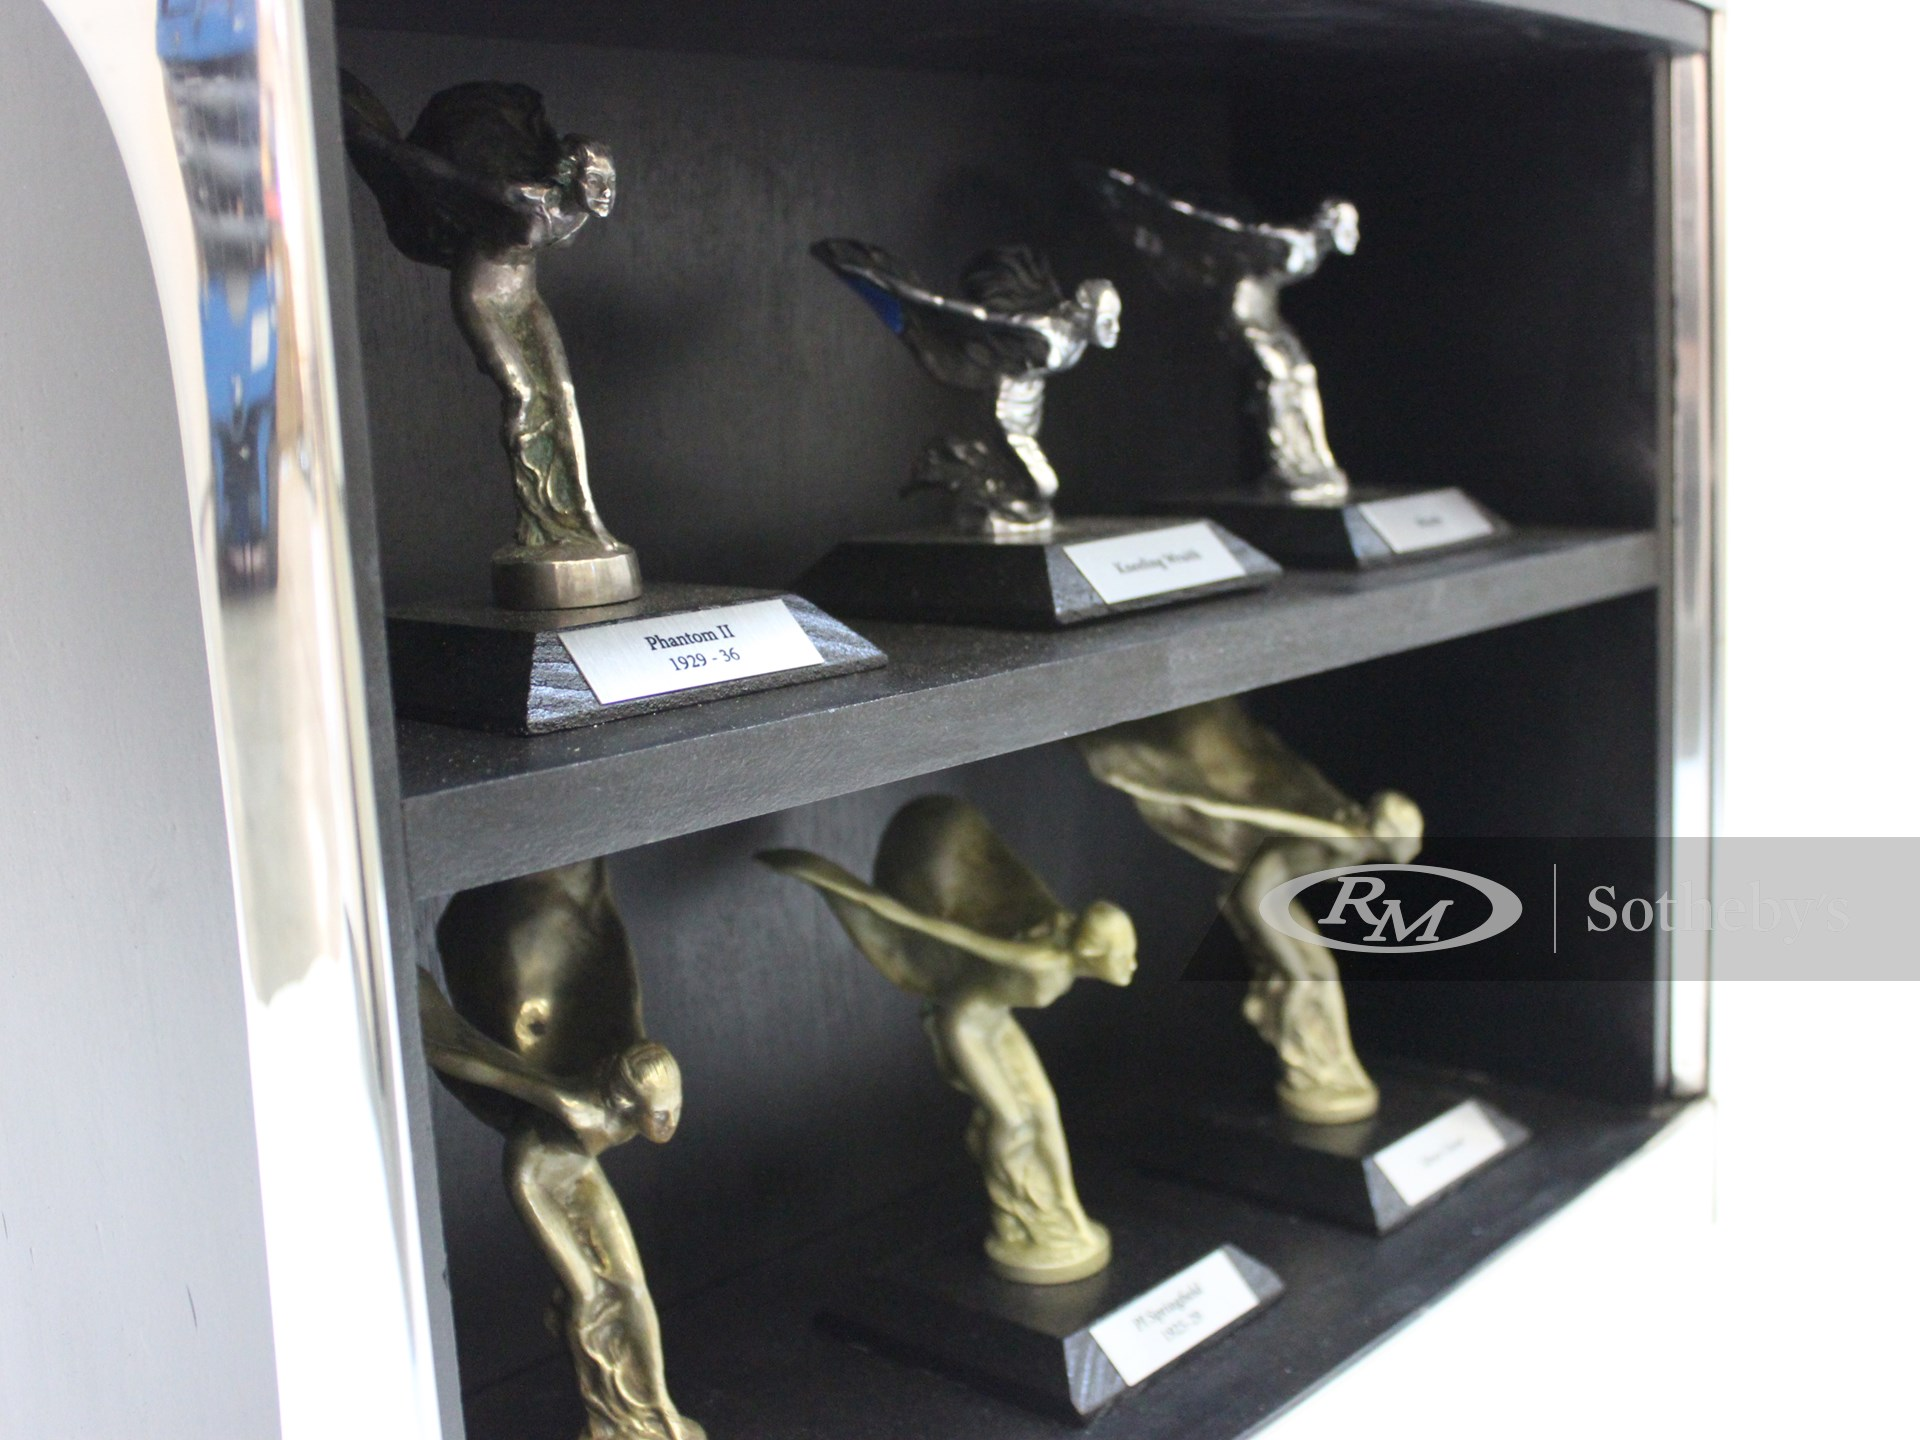 Rolls-Royce Spirit of Ecstasy Mascot Display -